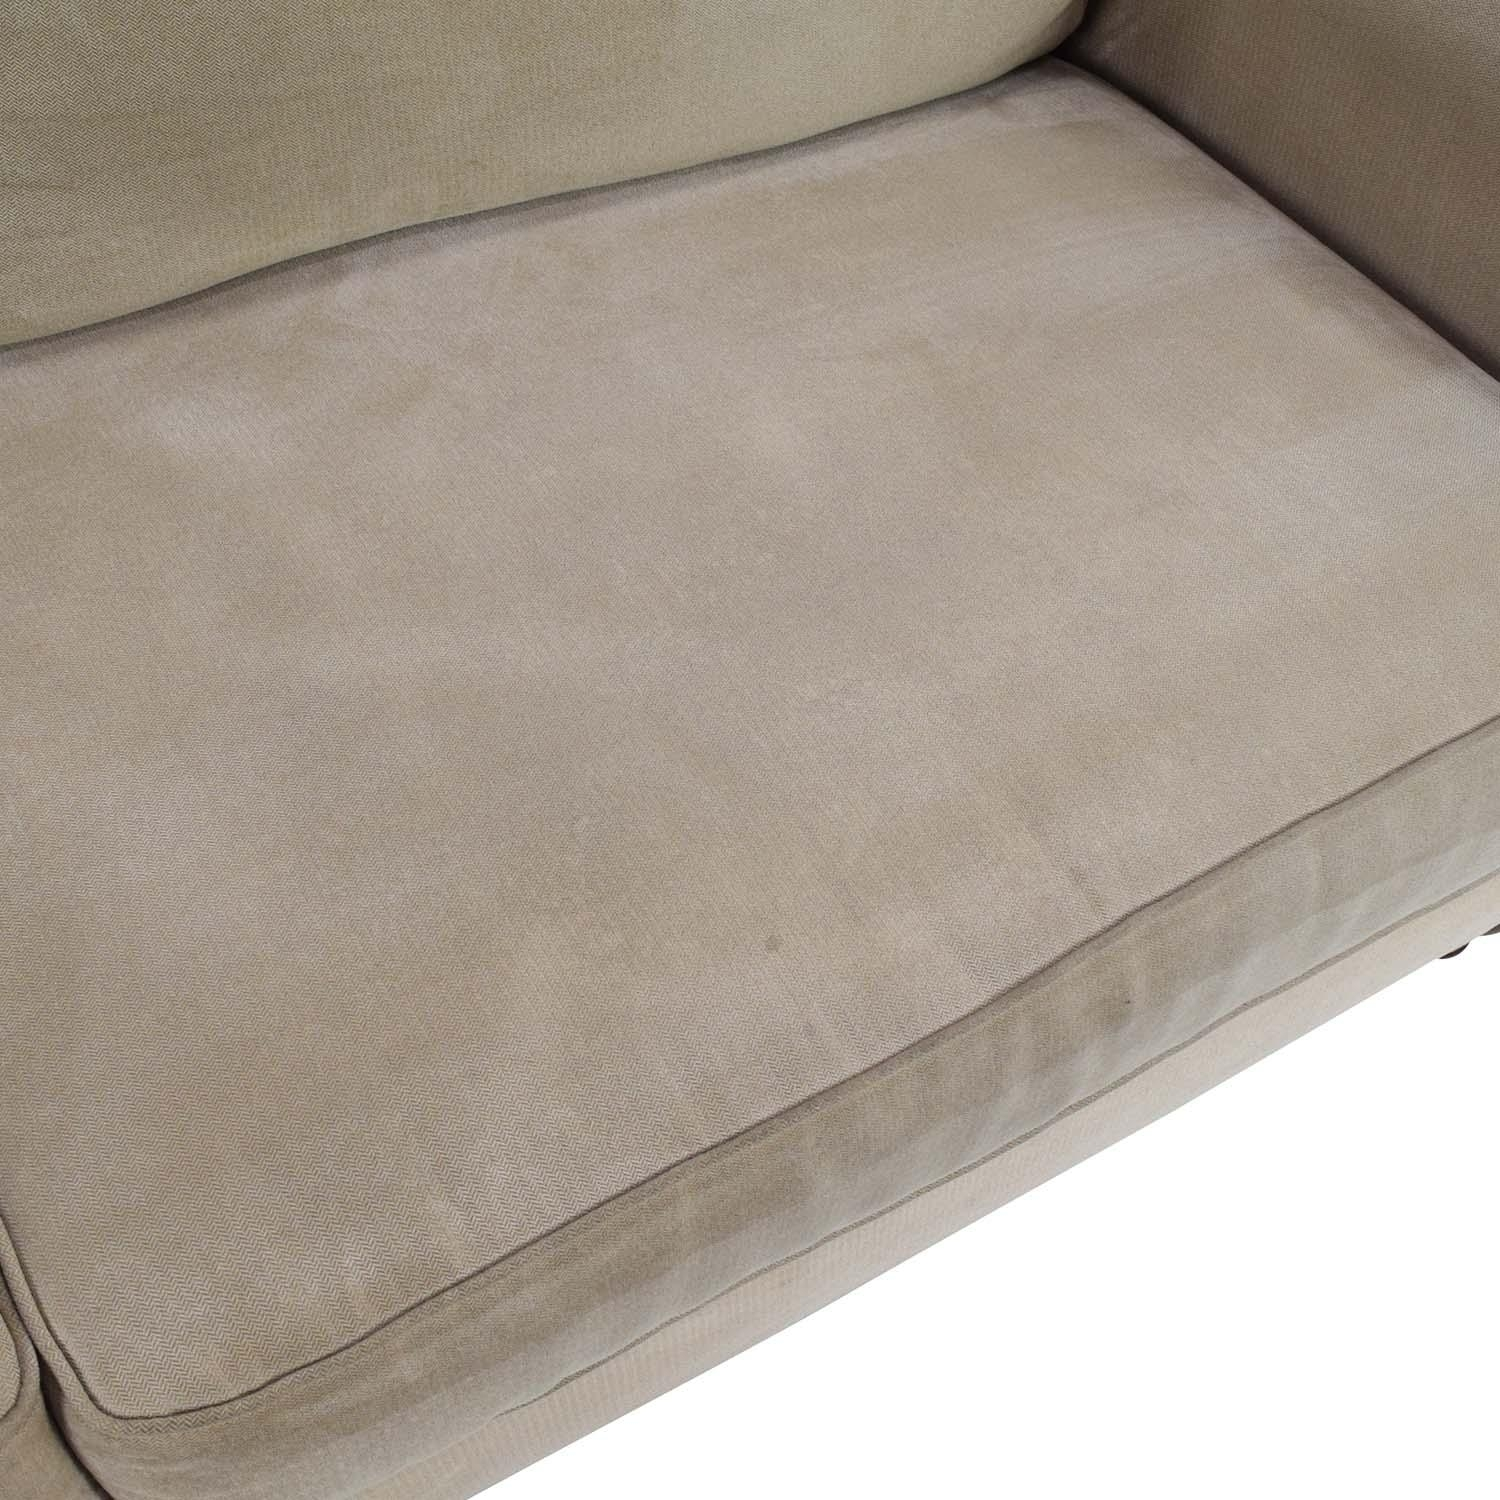 80% Off – Pier 1 Imports Pier 1 Alton Rolled Arm Sofa / Sofas Pertaining To Pier 1 Sofa Beds (View 15 of 20)